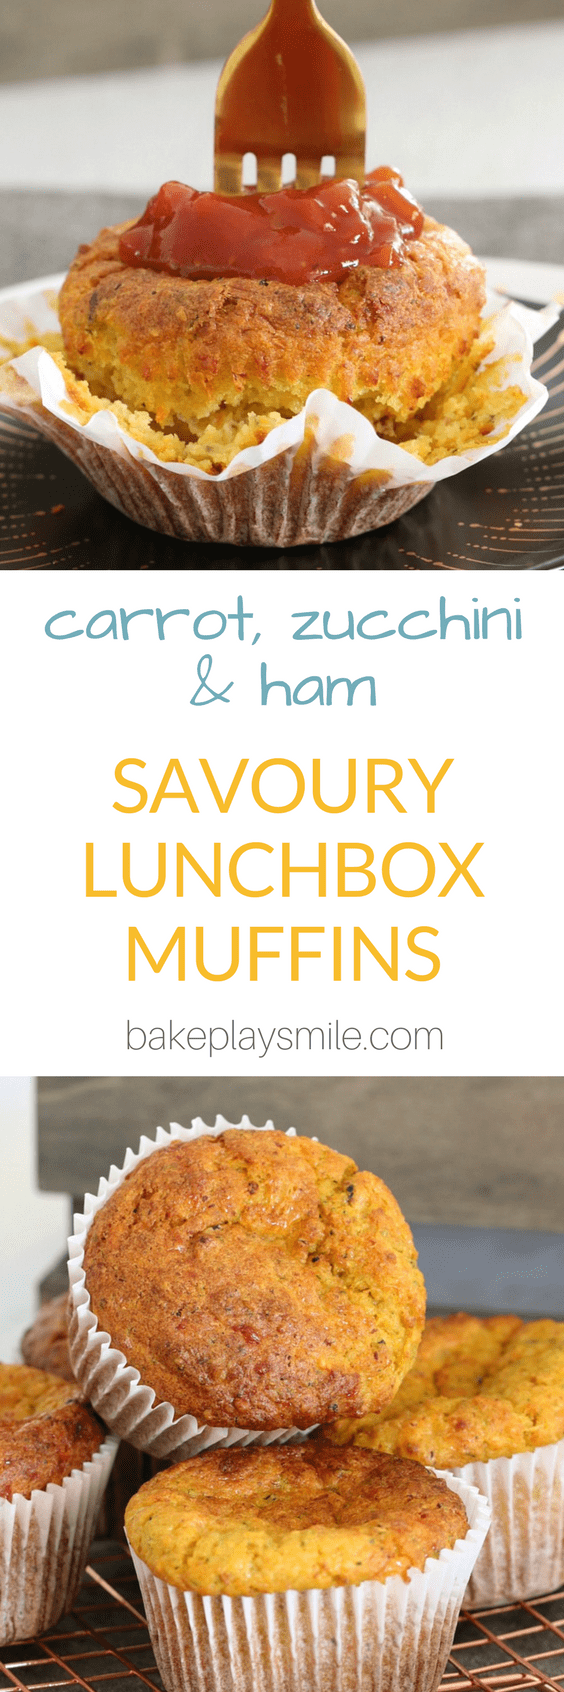 The most deliciously easy savoury muffins made with carrot, zucchini and ham. They're perfect for school lunch boxes... and are freezer-friendly too!